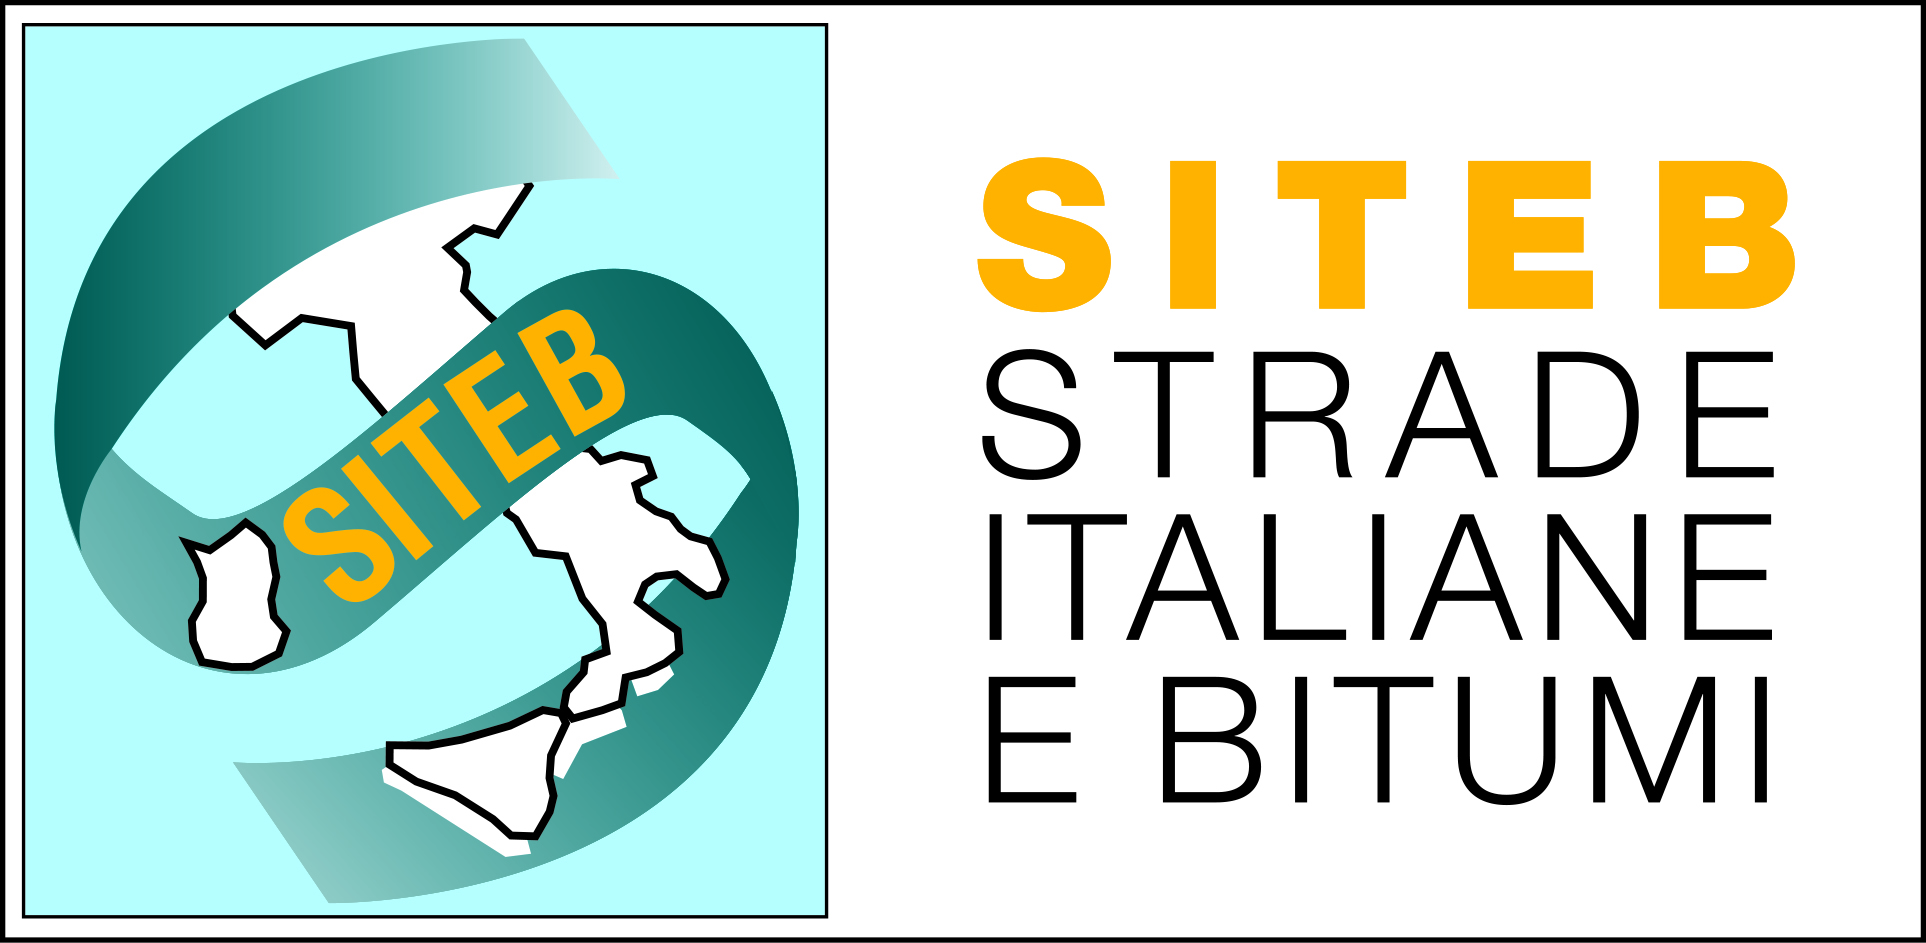 SITEB - Italian Roads and Bitumen